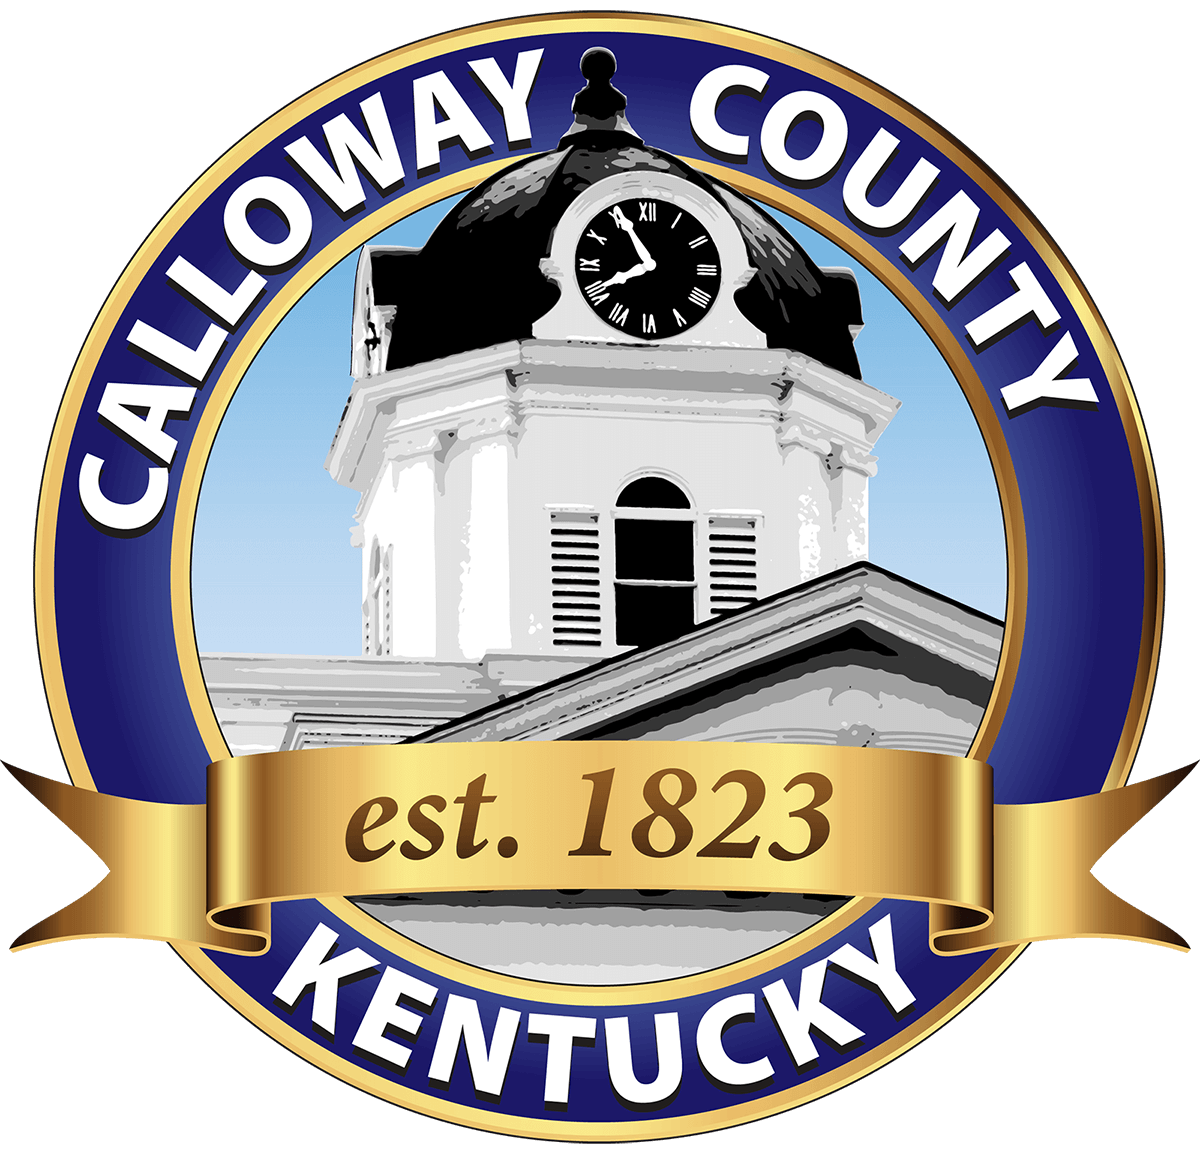 Official Calloway County logo by EyeSite Creations